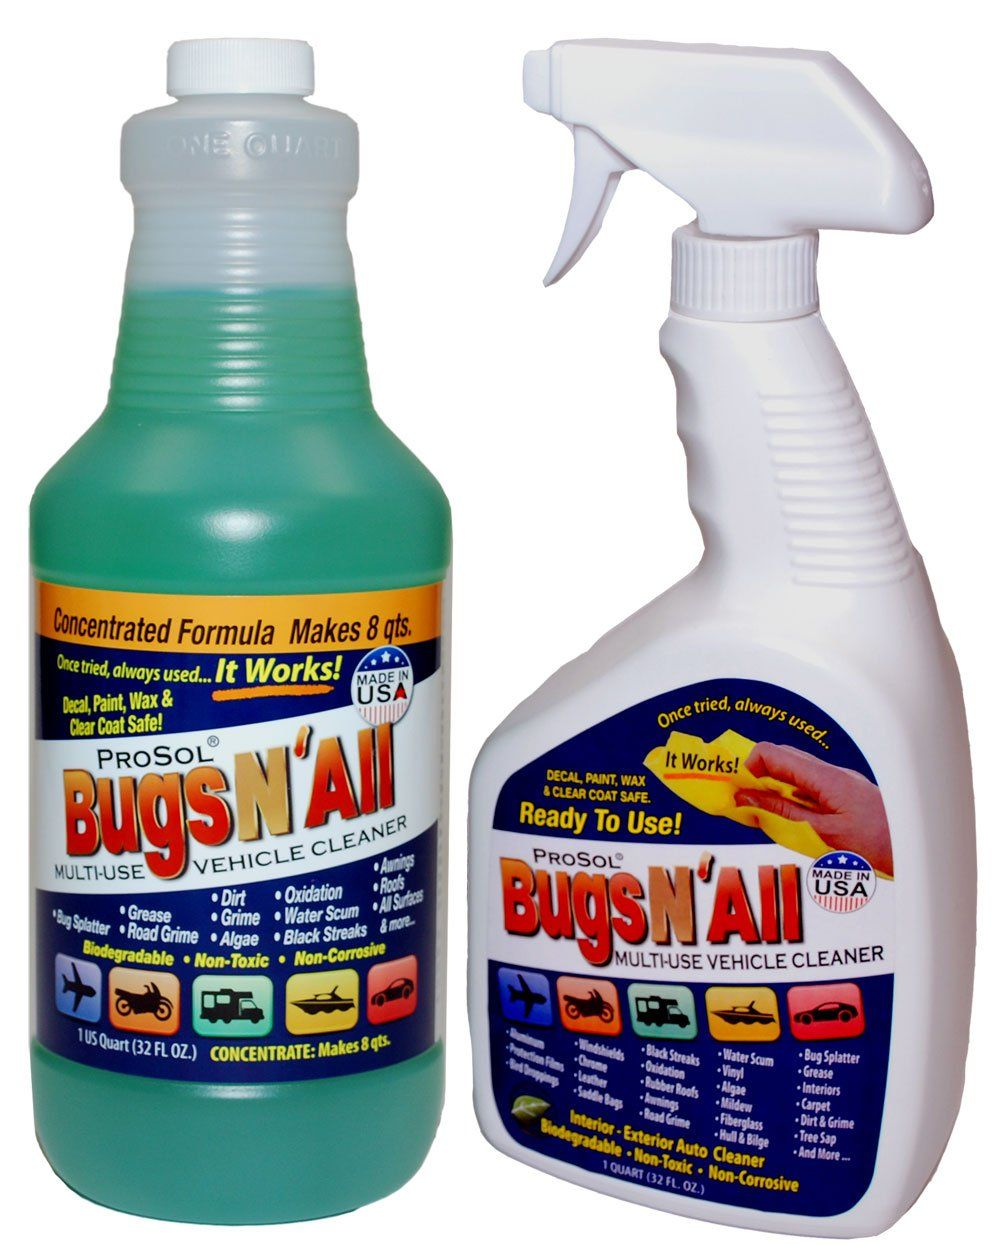 Bugs n all professional strength vehicle cleanerbug